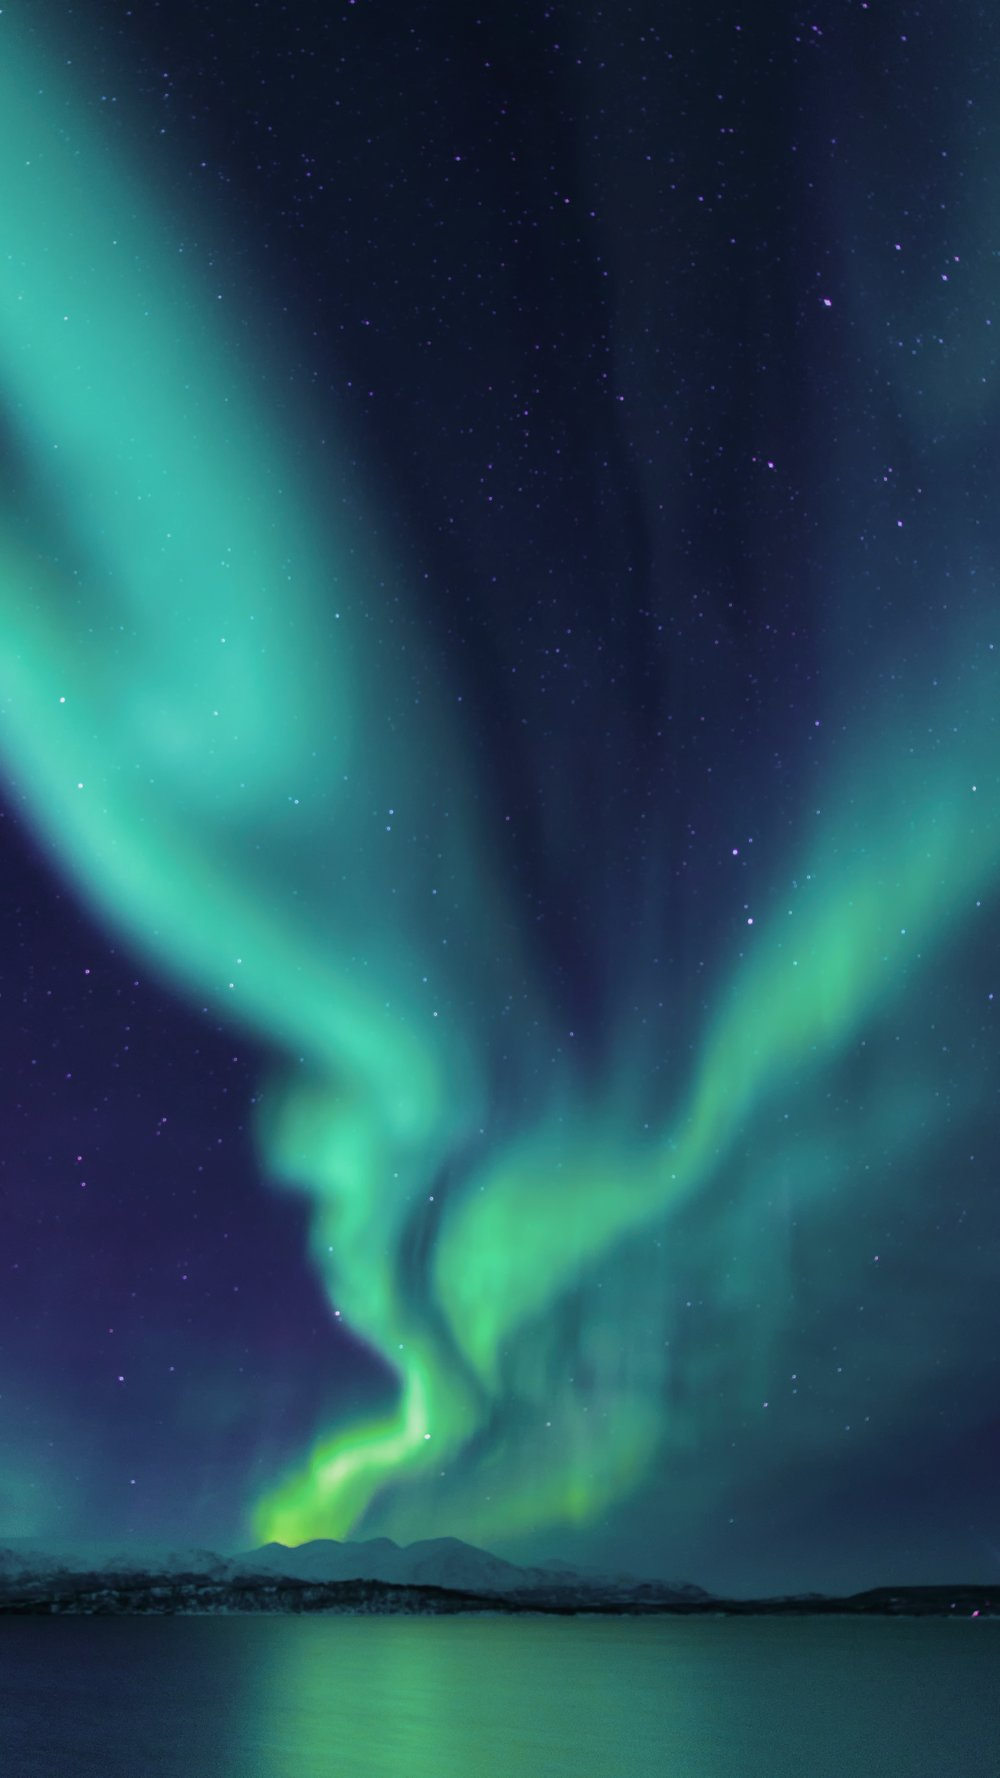 Take a flight to see the Northern Lights -